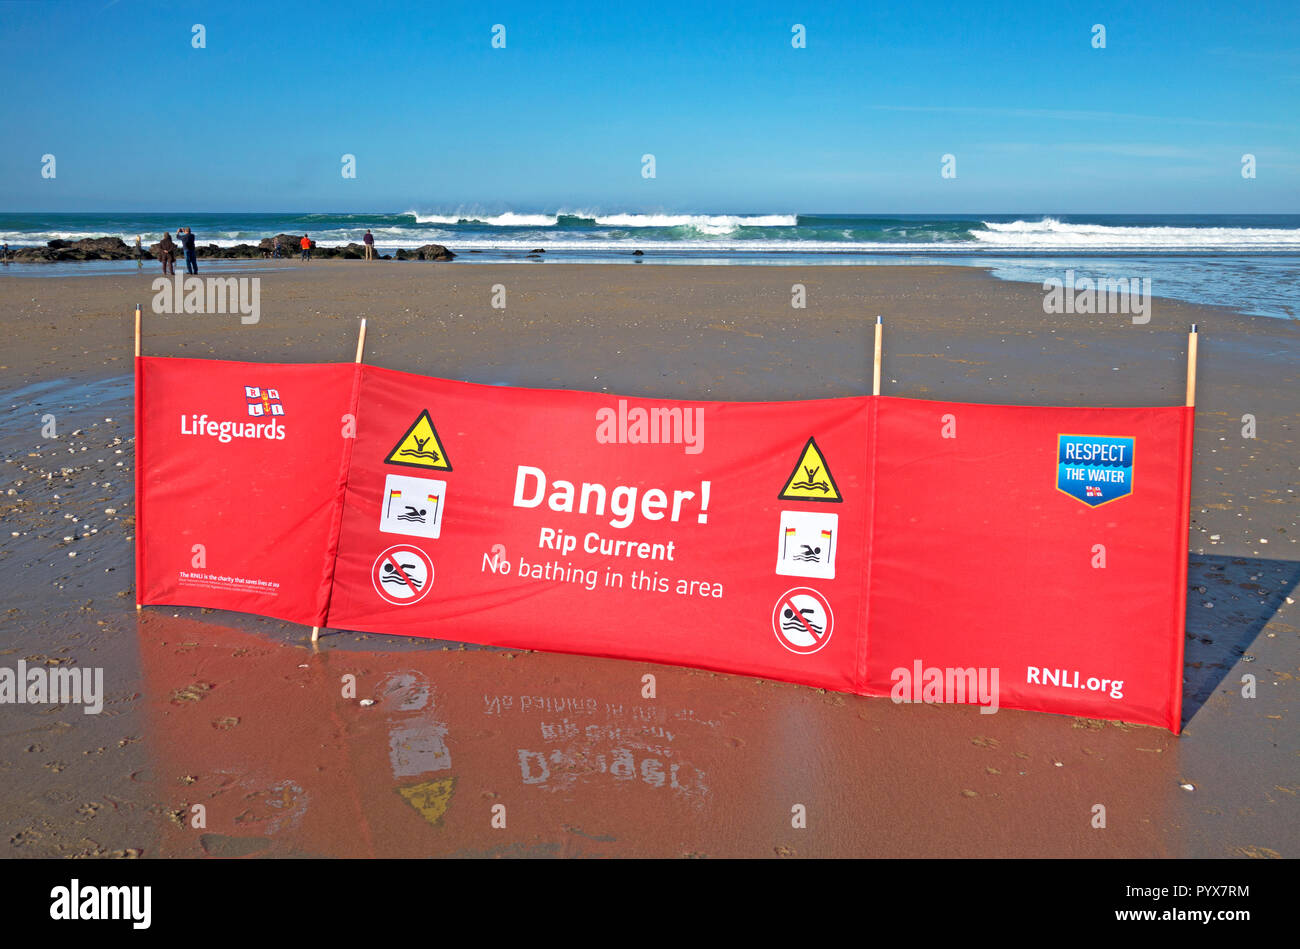 warning danger safety information sign no bathing rip current, porthtowan beach, cornwall, england, uk, - Stock Image